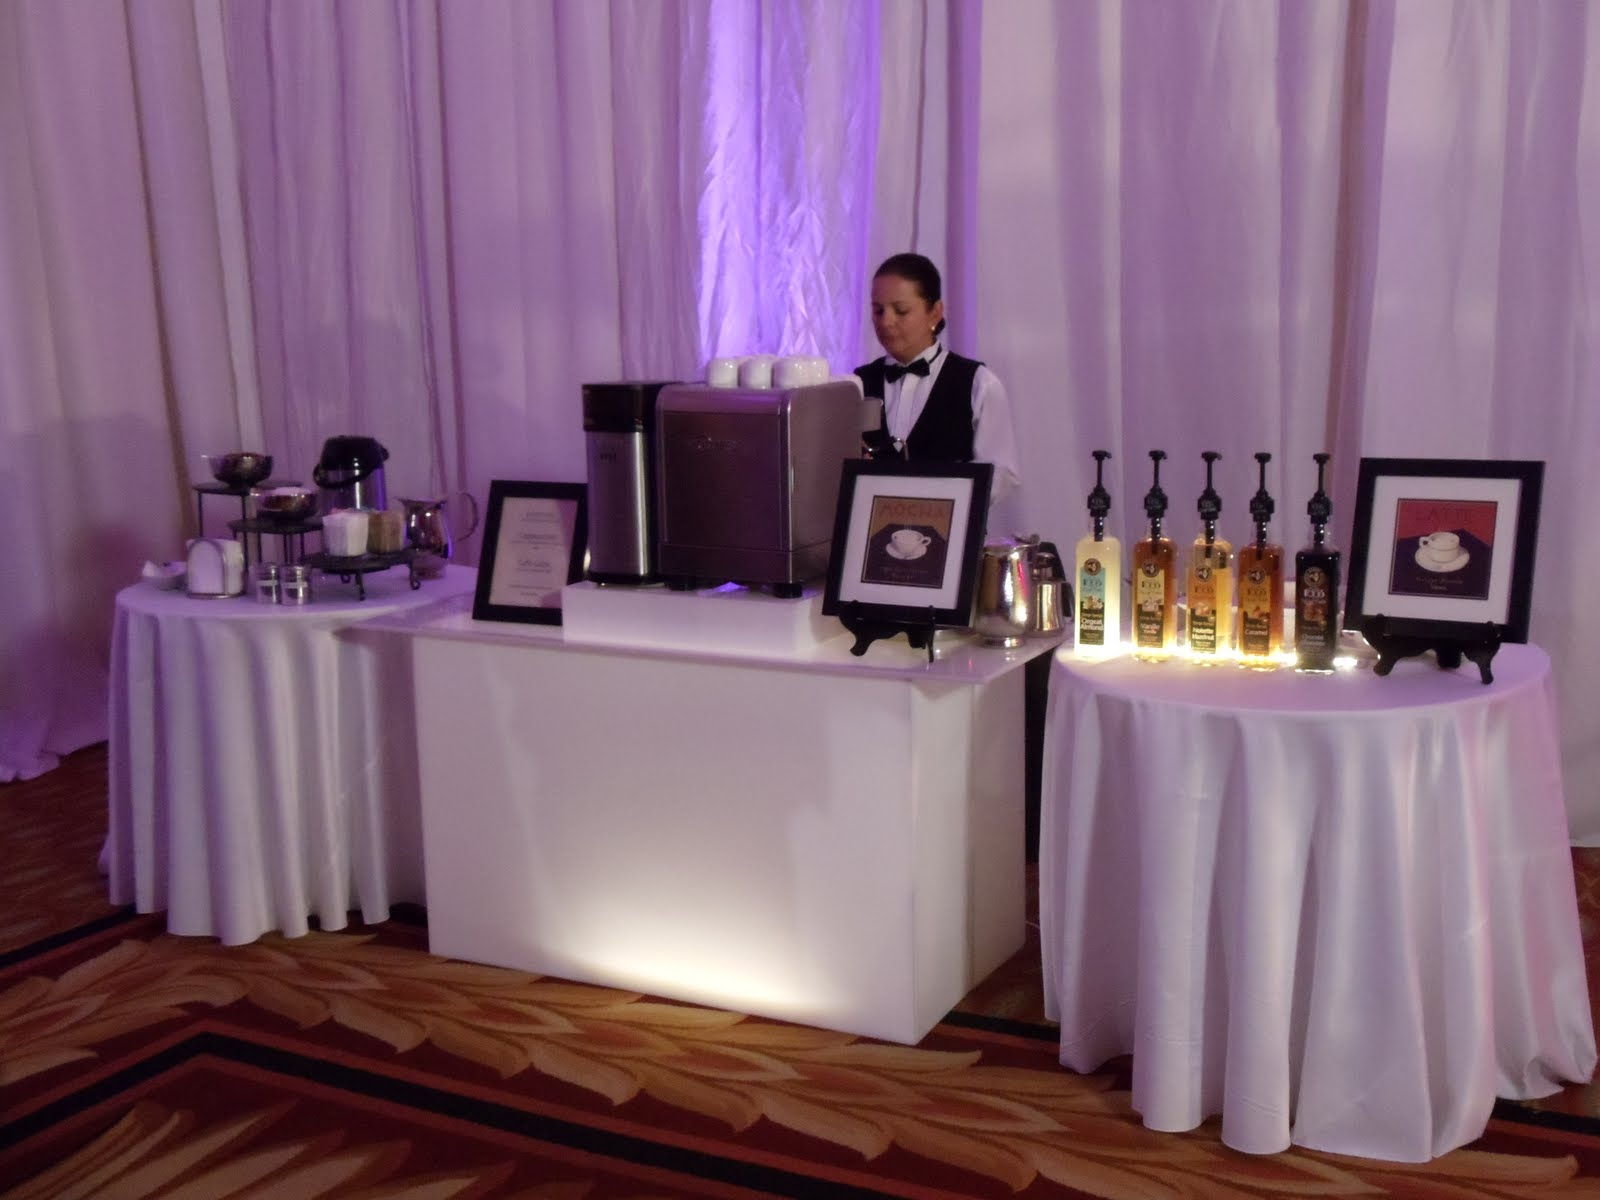 Mobile Bartending Service Business Plan